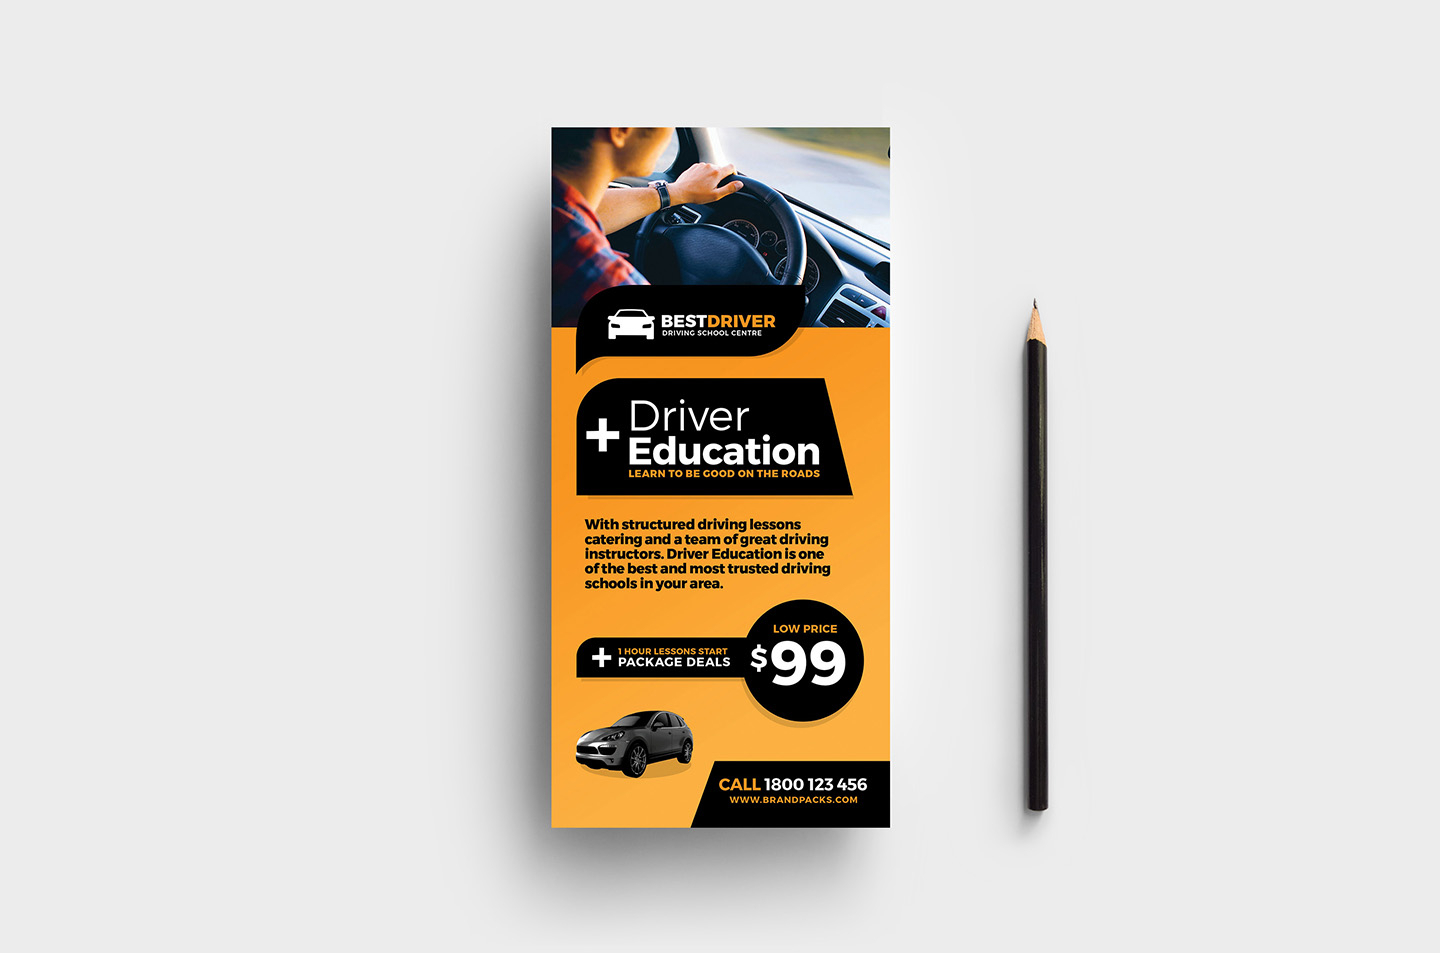 Free Driving Instructor Accounts Spreadsheet For Free Driving School Poster  Rack Card Template  Psd, Ai  Vector